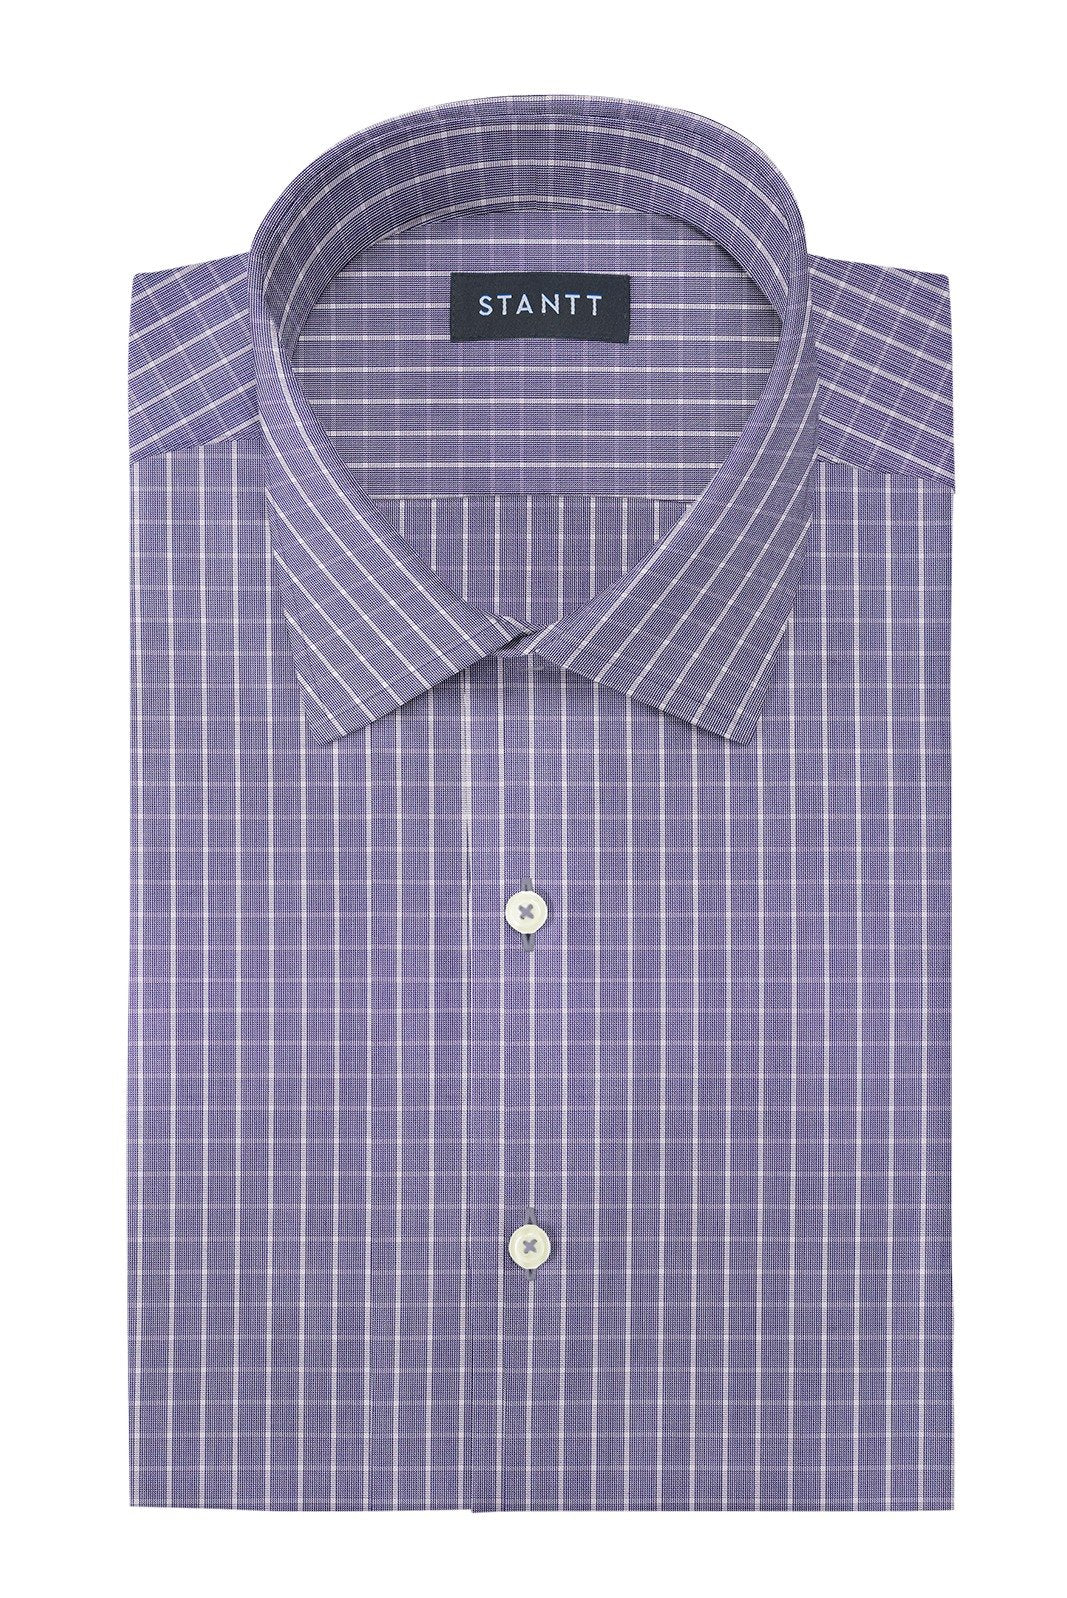 Wrinkle-Resistant Navy Gingham: Modified-Spread Collar, Barrel Cuff